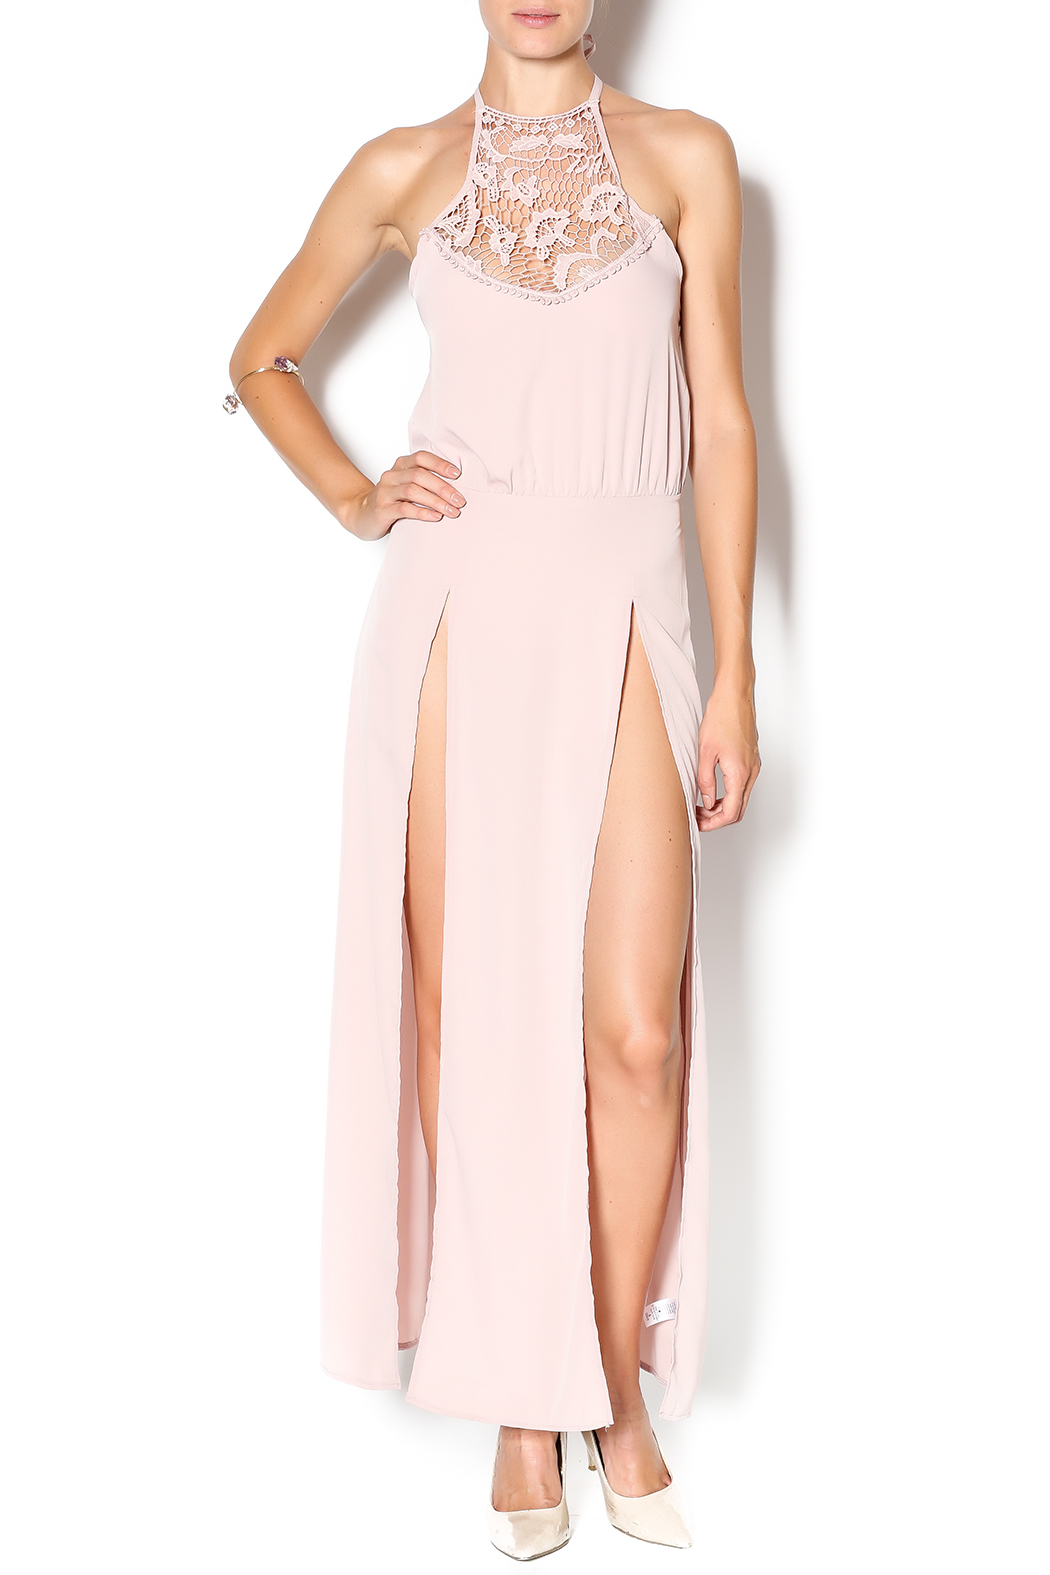 Solemio Blush Maxi Dress - Main Image